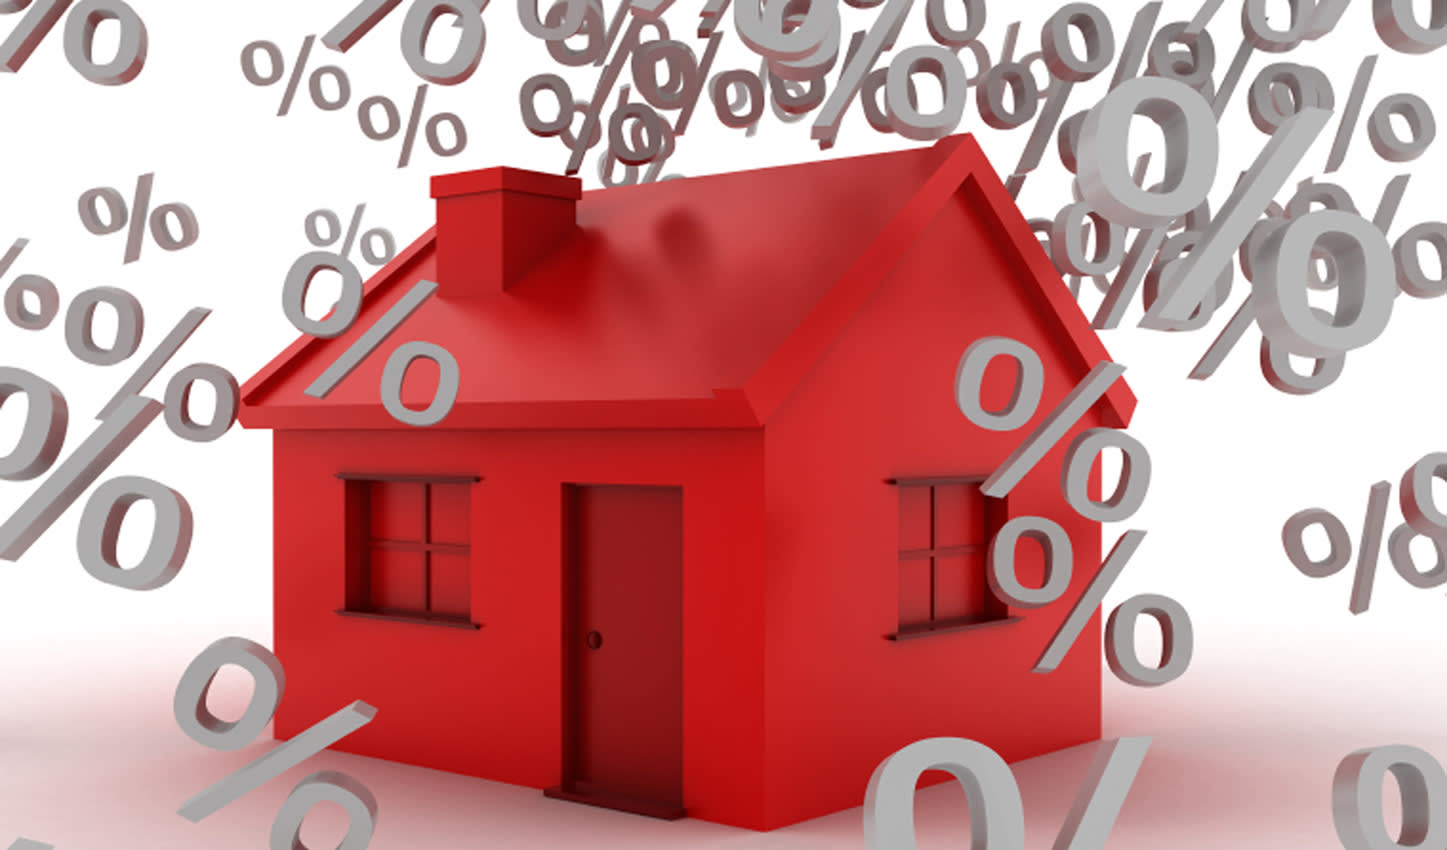 Saffron BS launches interest-only mortgage